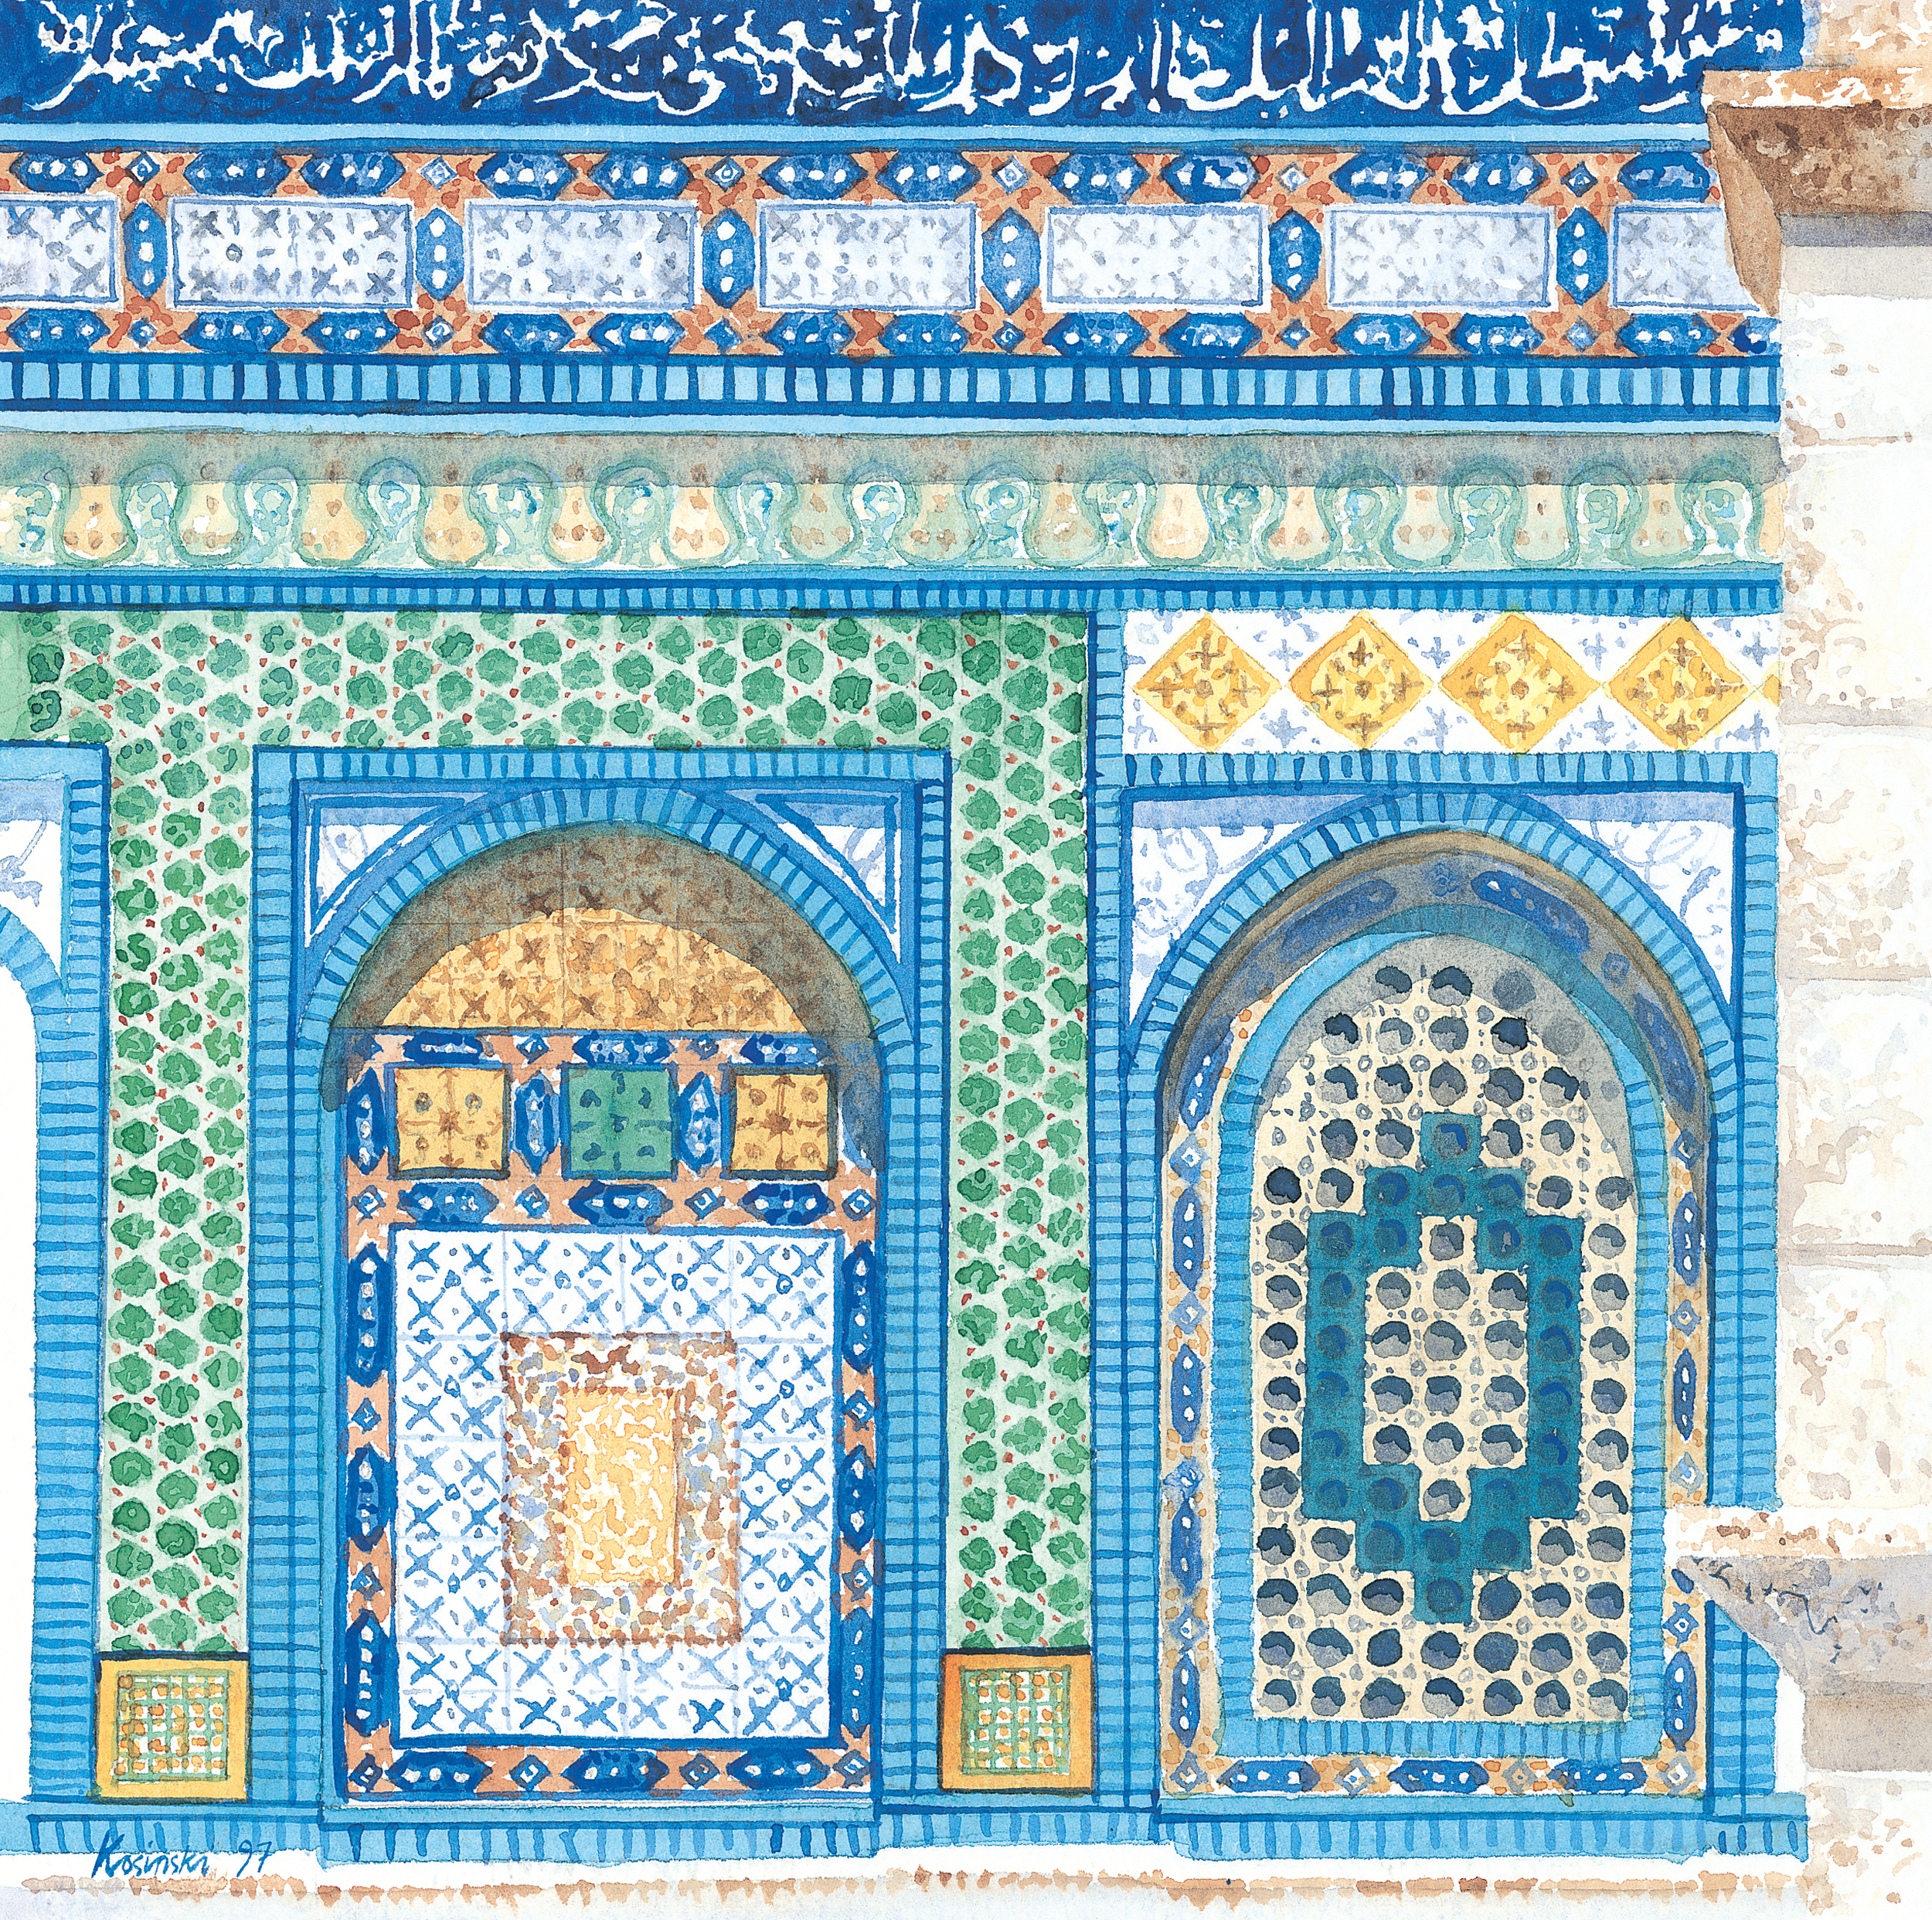 Tiles on Dome of the Rock